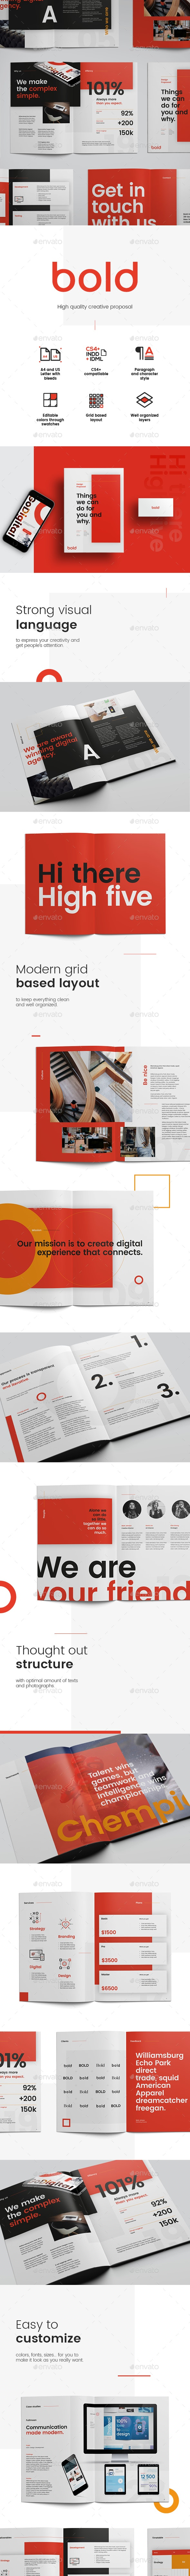 Bold Design Proposal - Proposals & Invoices Stationery